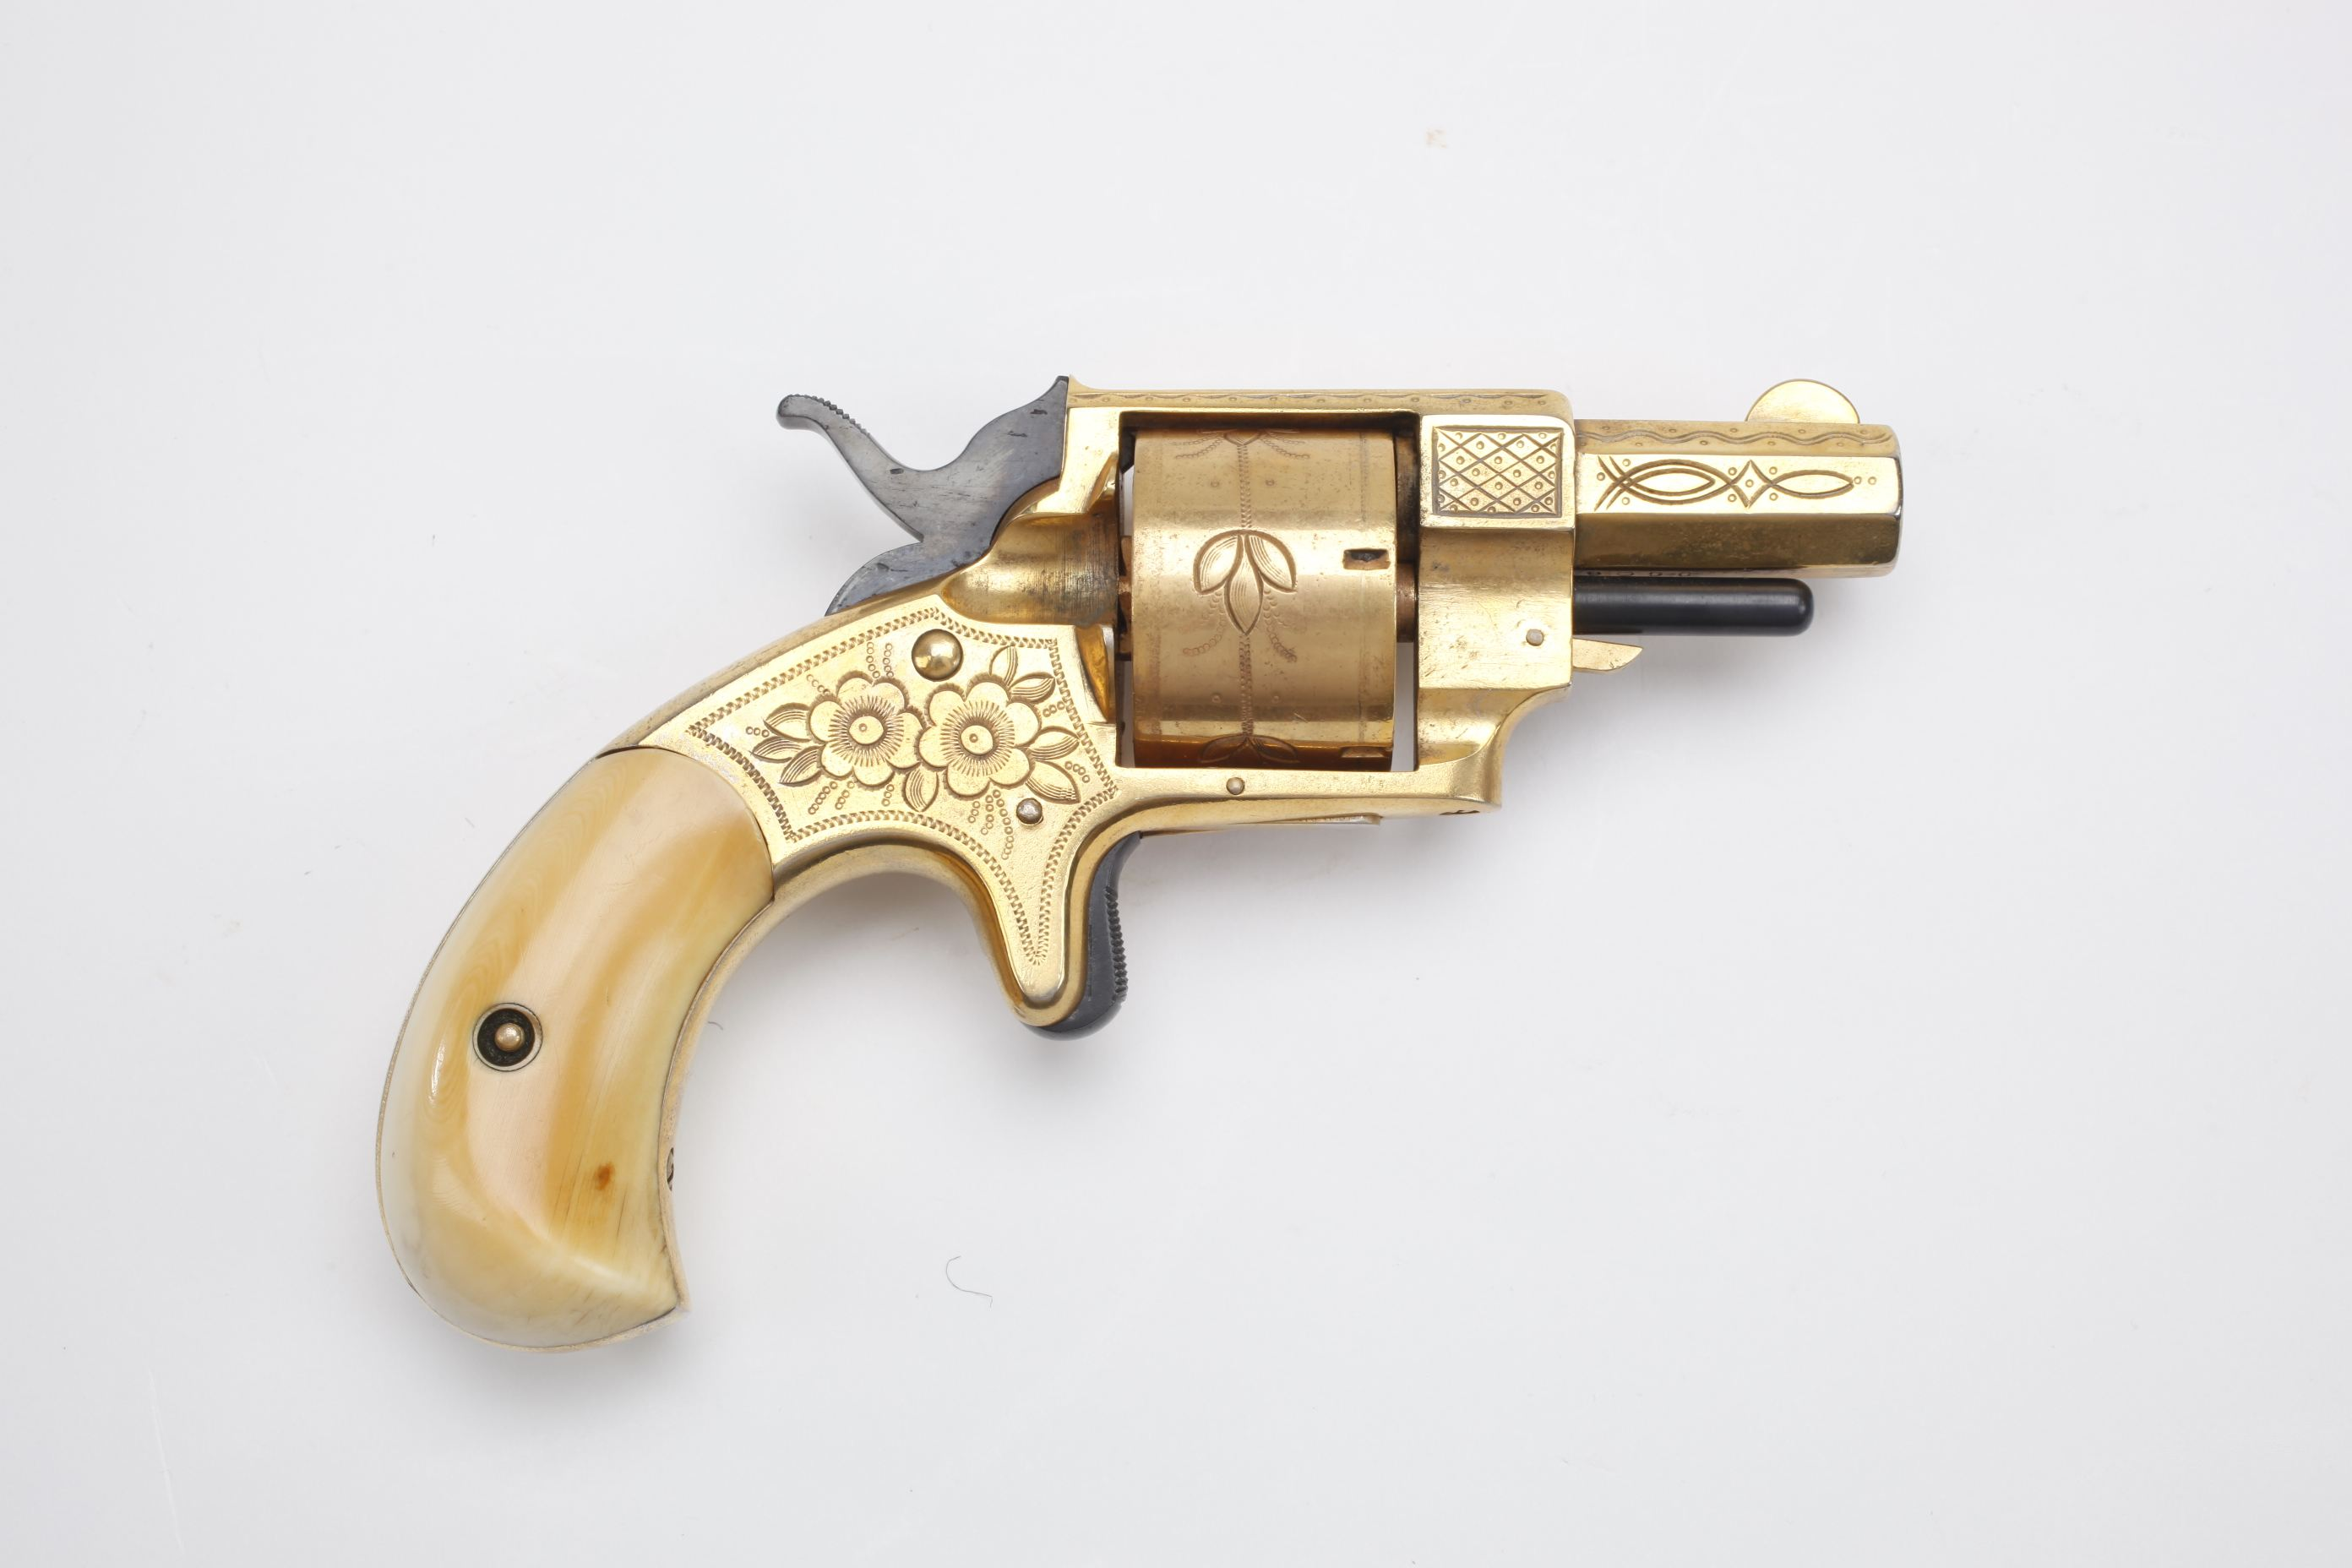 Forehand & Wadsworth Swamp Angel revolver